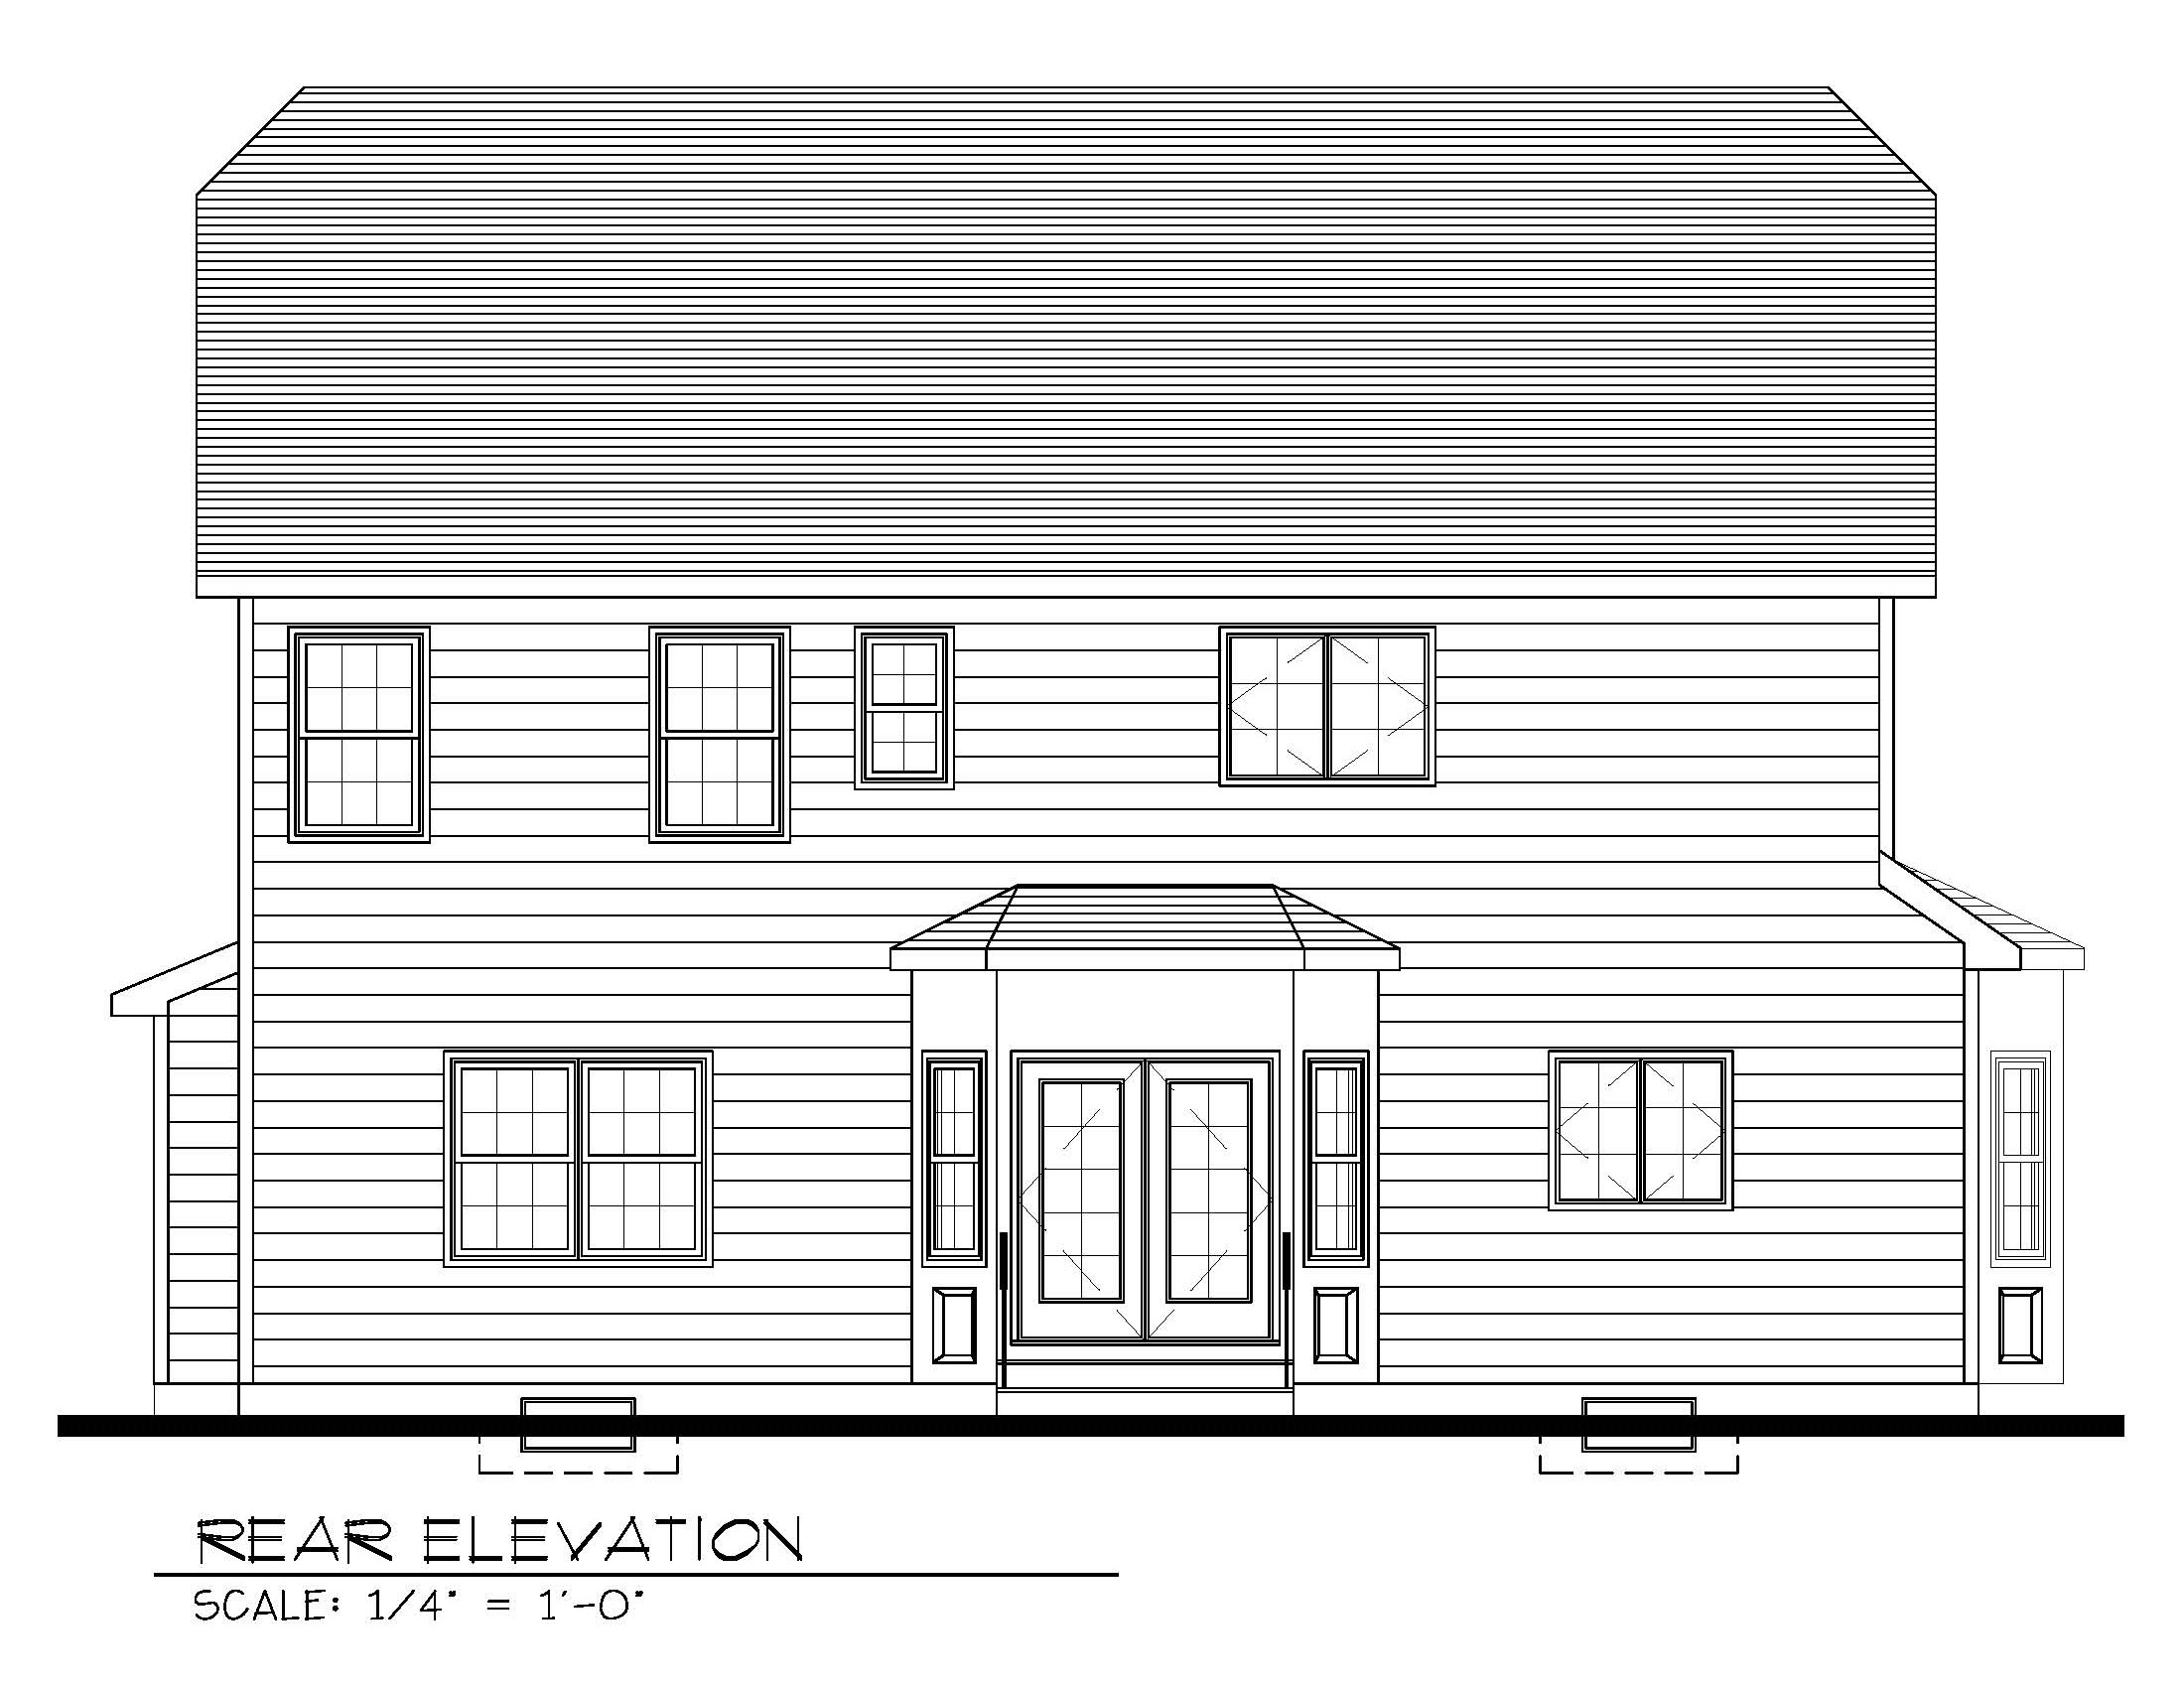 621 Green Briar Rear Elevation